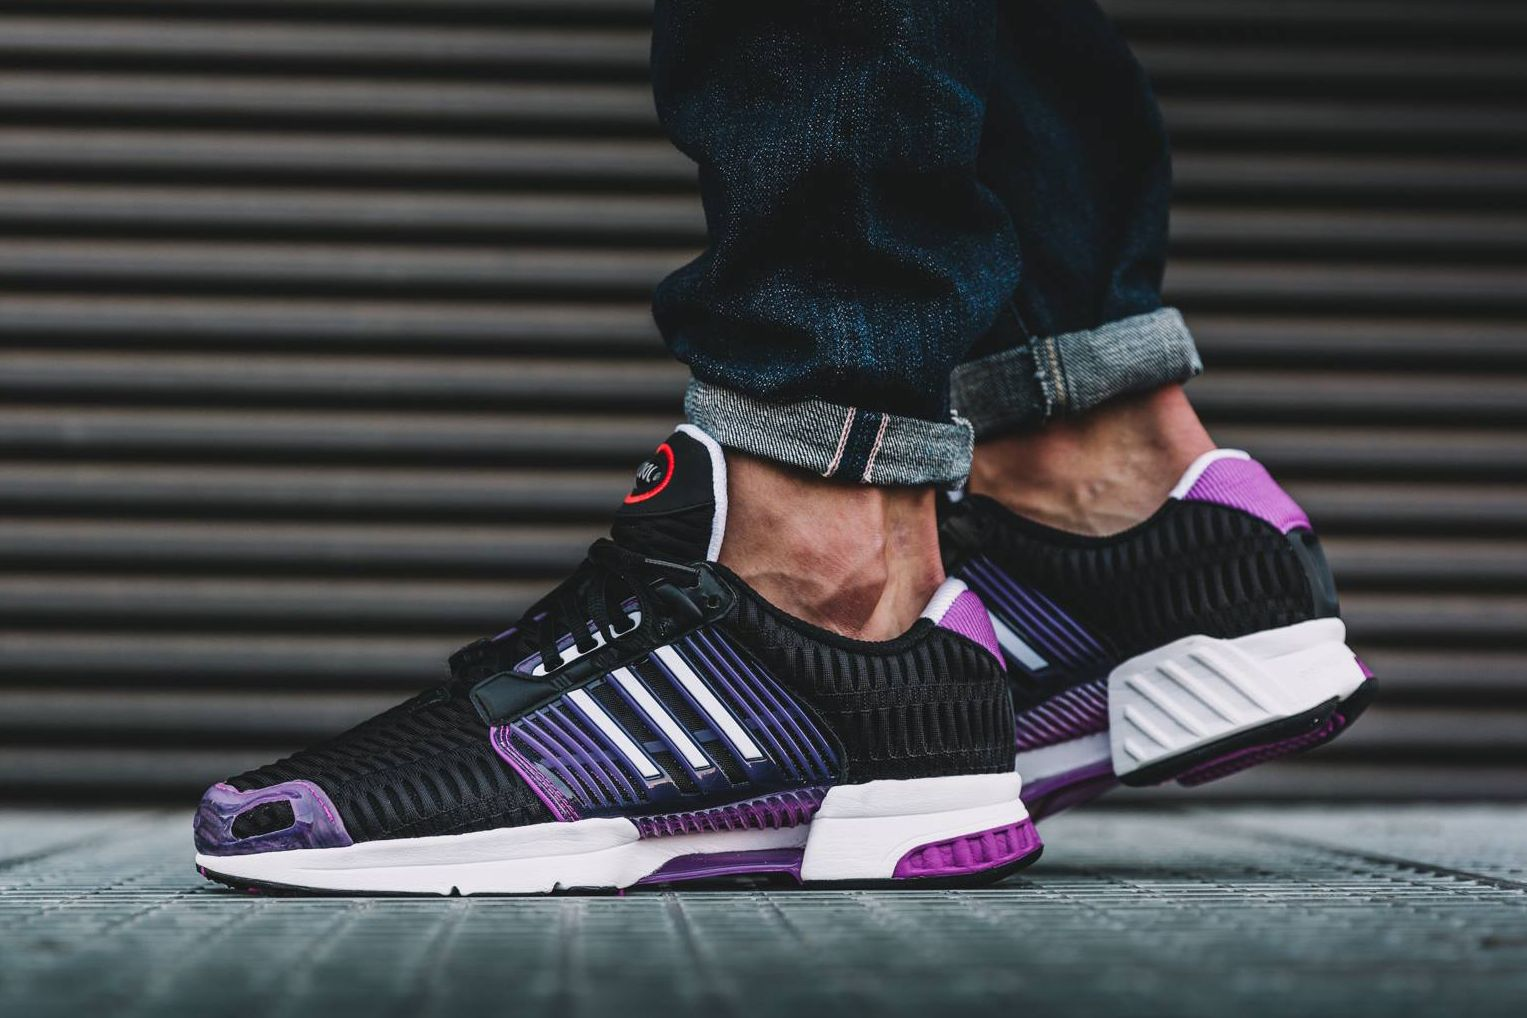 adidas Originals Releases the Climacool 1 in